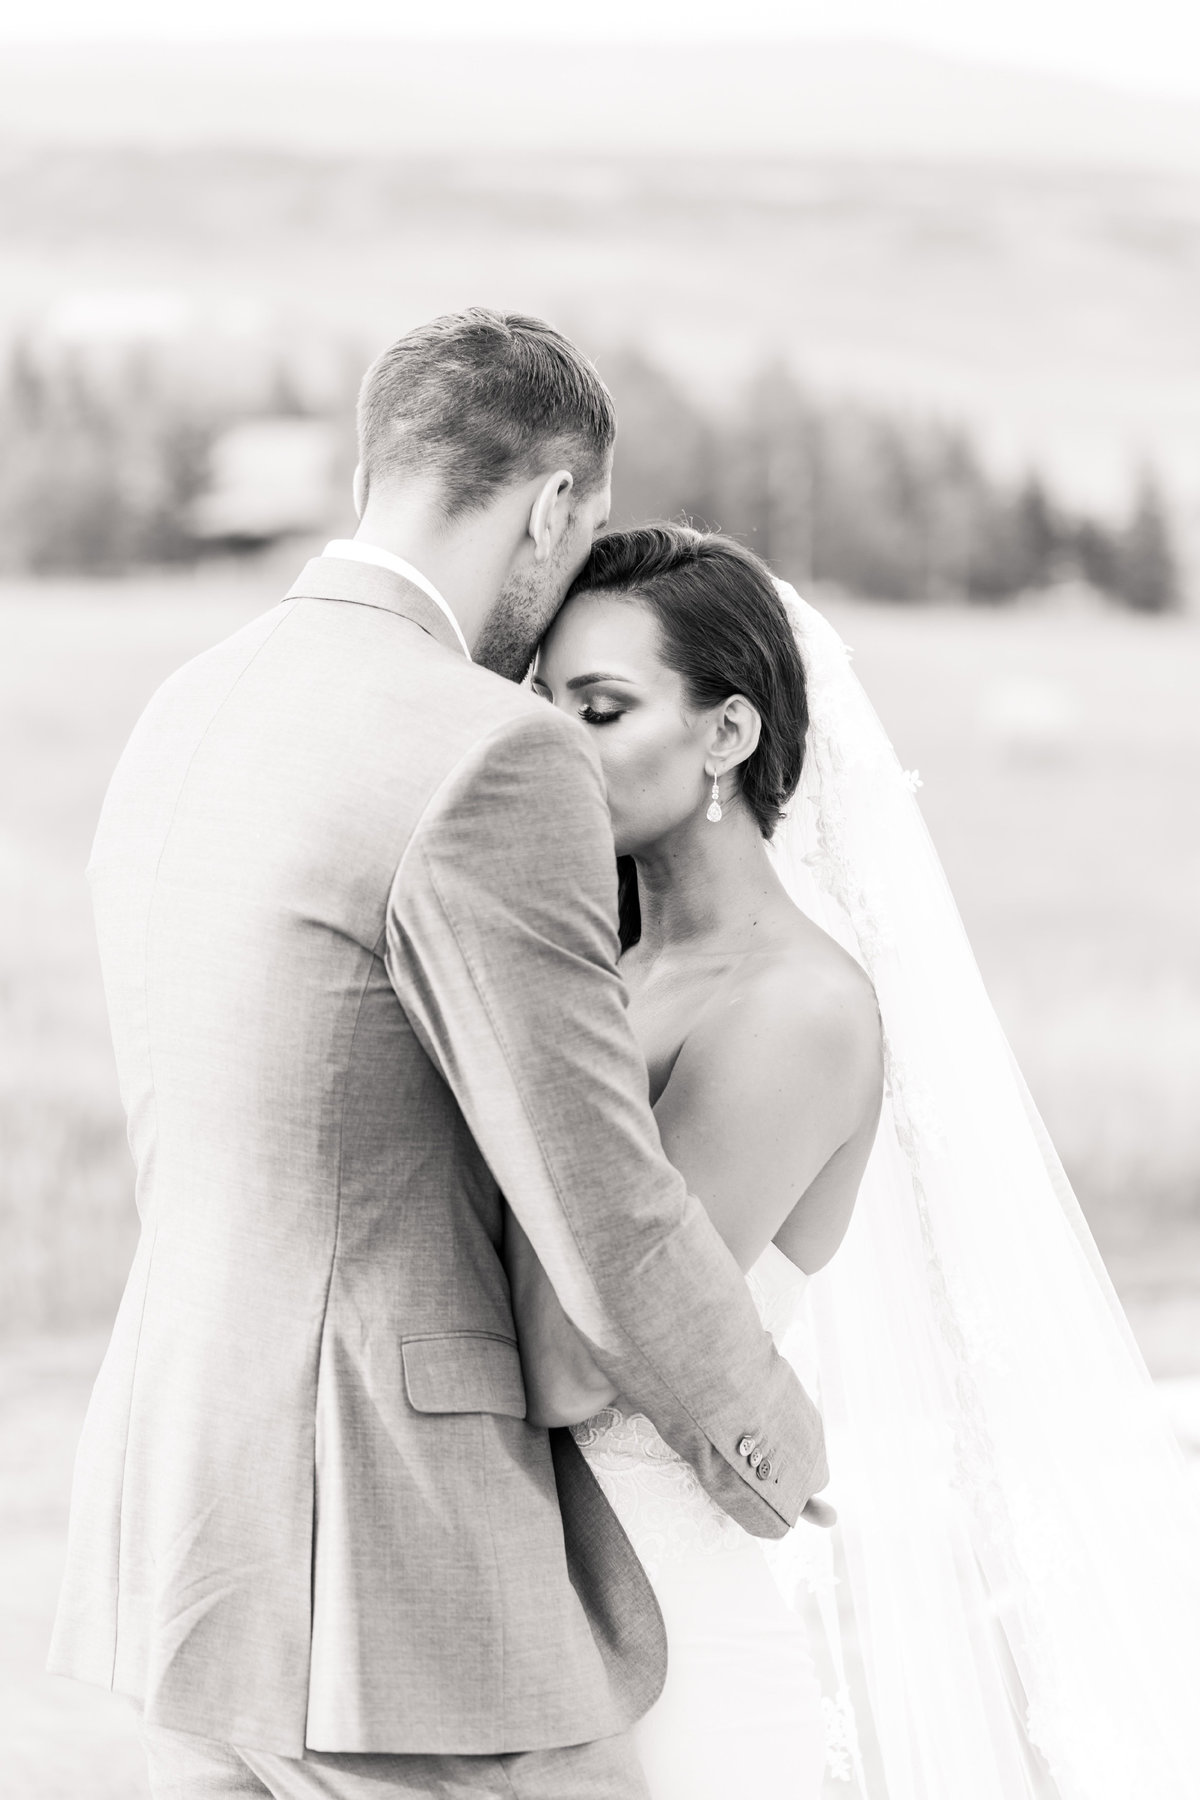 Kari_Ryan_Anderson_Colorado_Outdoor_Chapel_Wedding_Valorie_Darling_Photography - 89 of 126